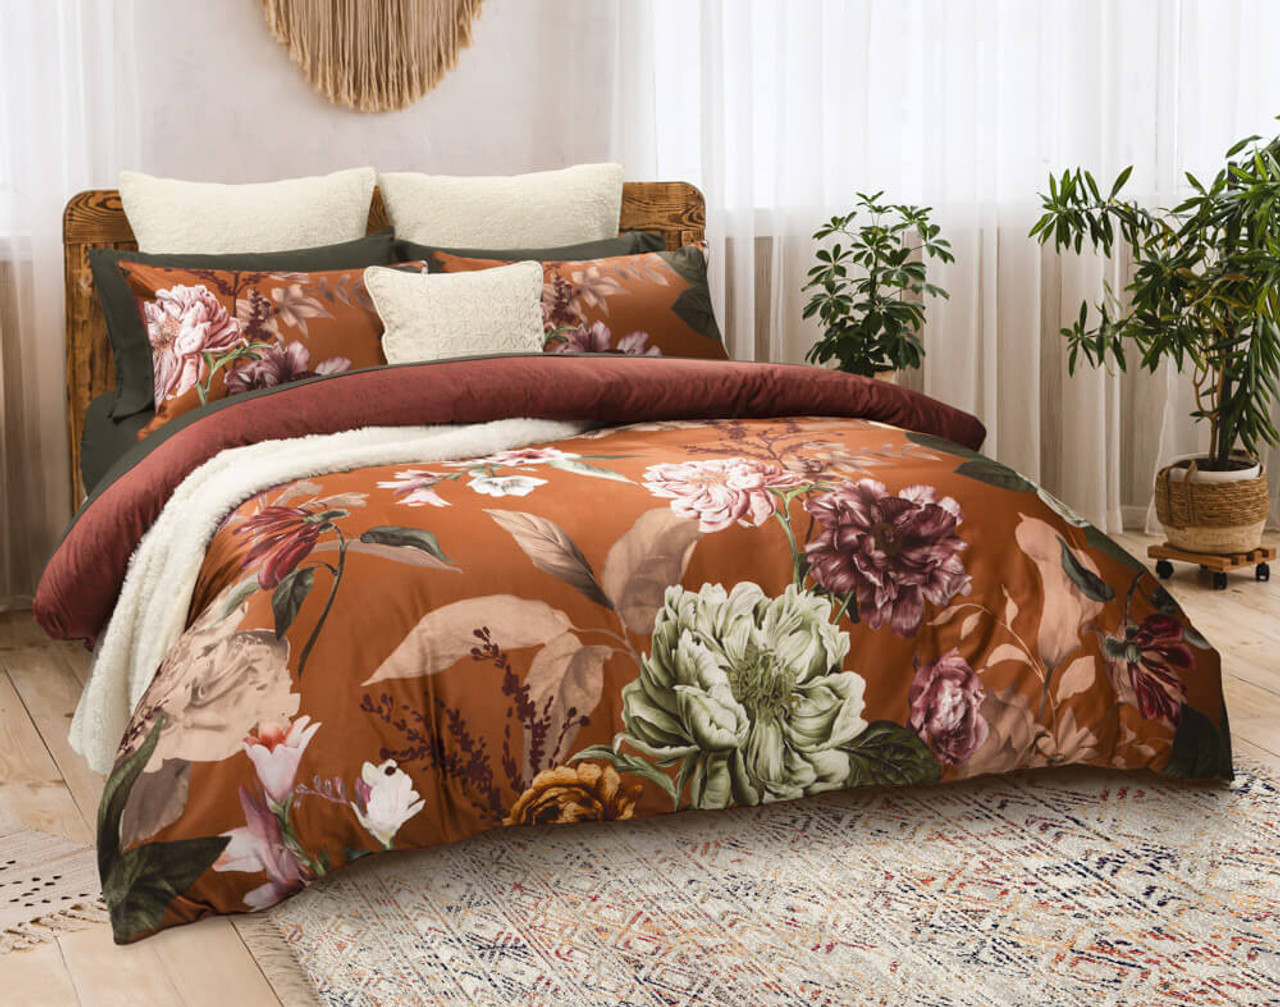 Lillith Duvet cover side view, shown with our BeechBliss Rainforest Green Sheet Set.